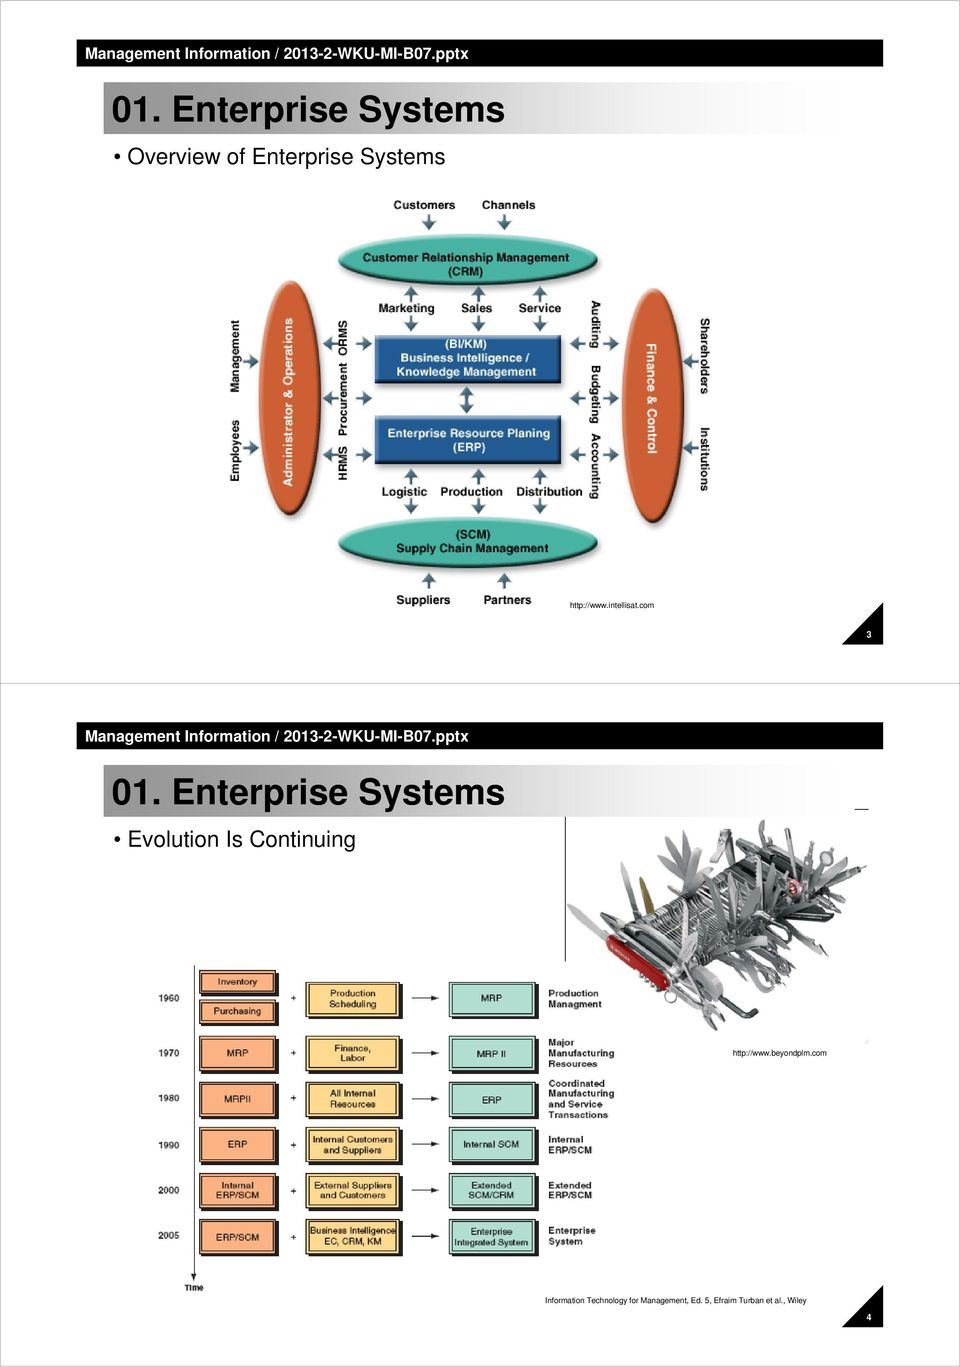 Enterprise Systems Evolution Is Continuing http://www.